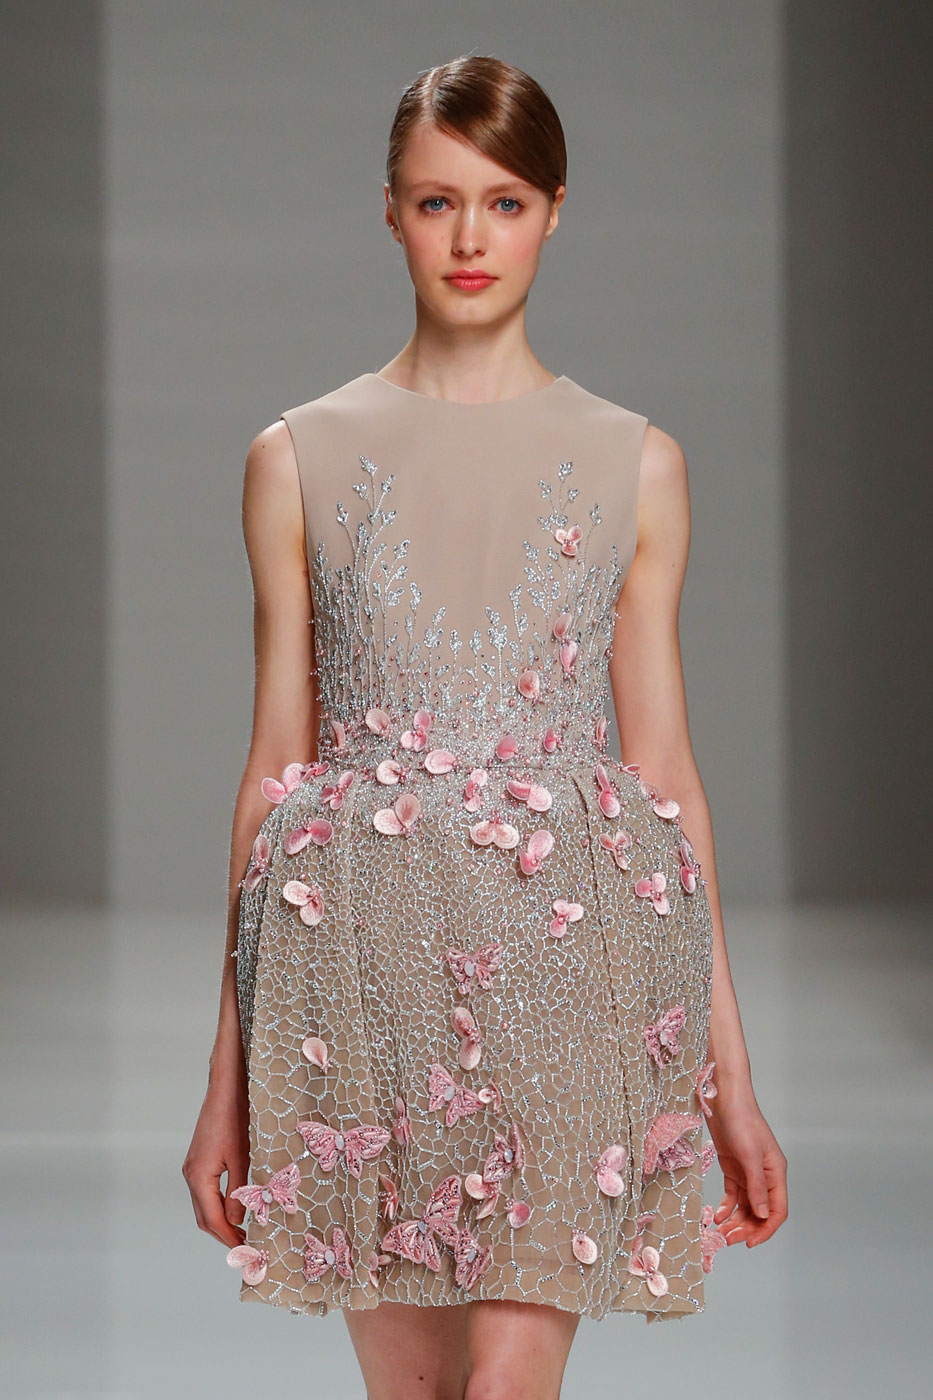 Georges-Hobeika-fashion-runway-show-haute-couture-paris-spring-2015-the-impression-50